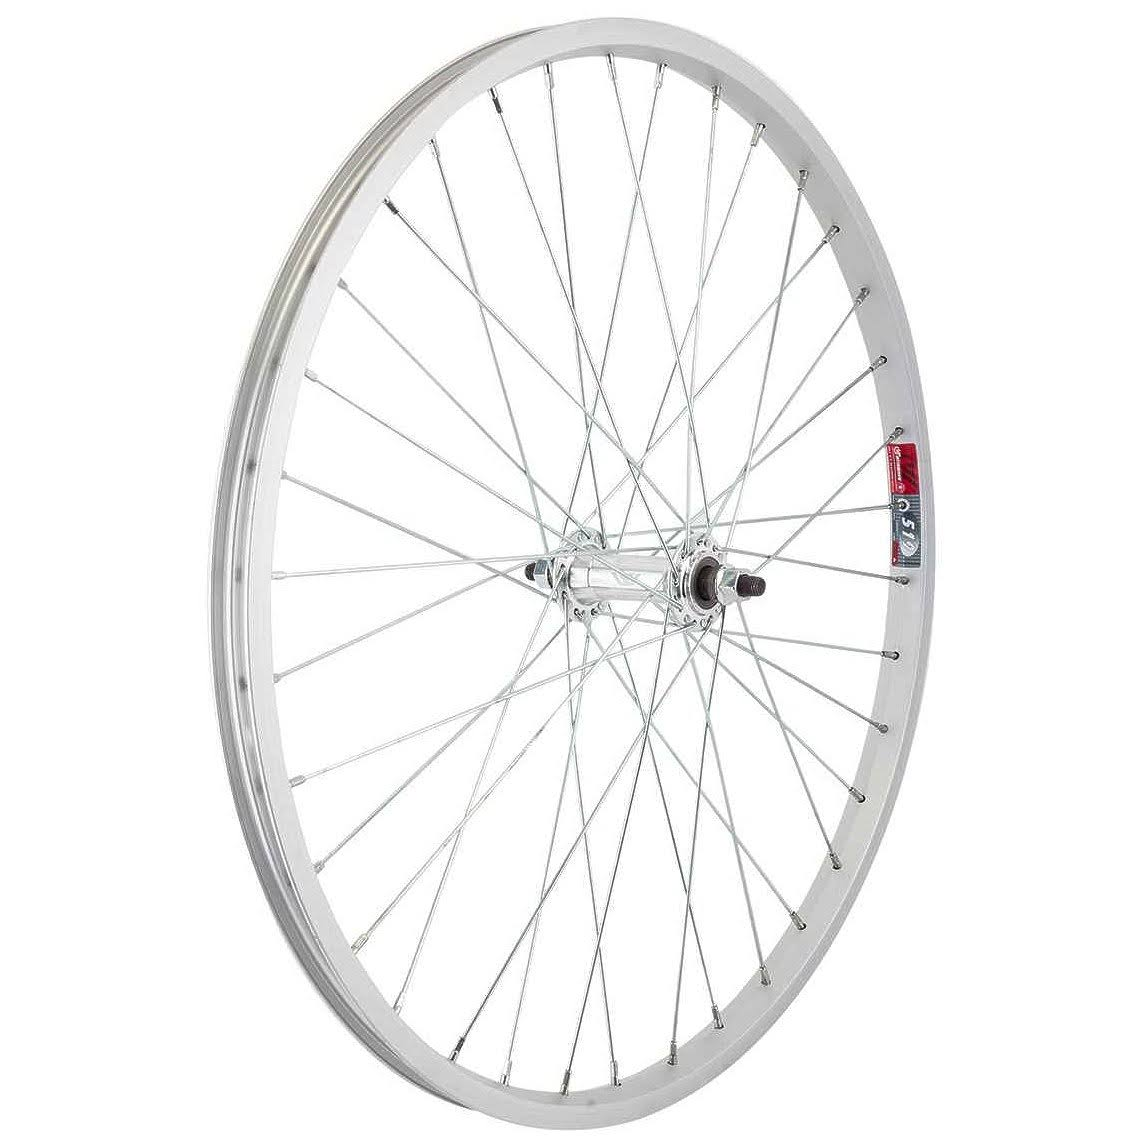 "Wheel Master Front Bicycle Wheel - Silver, 24"" x 1.75"", 36H"